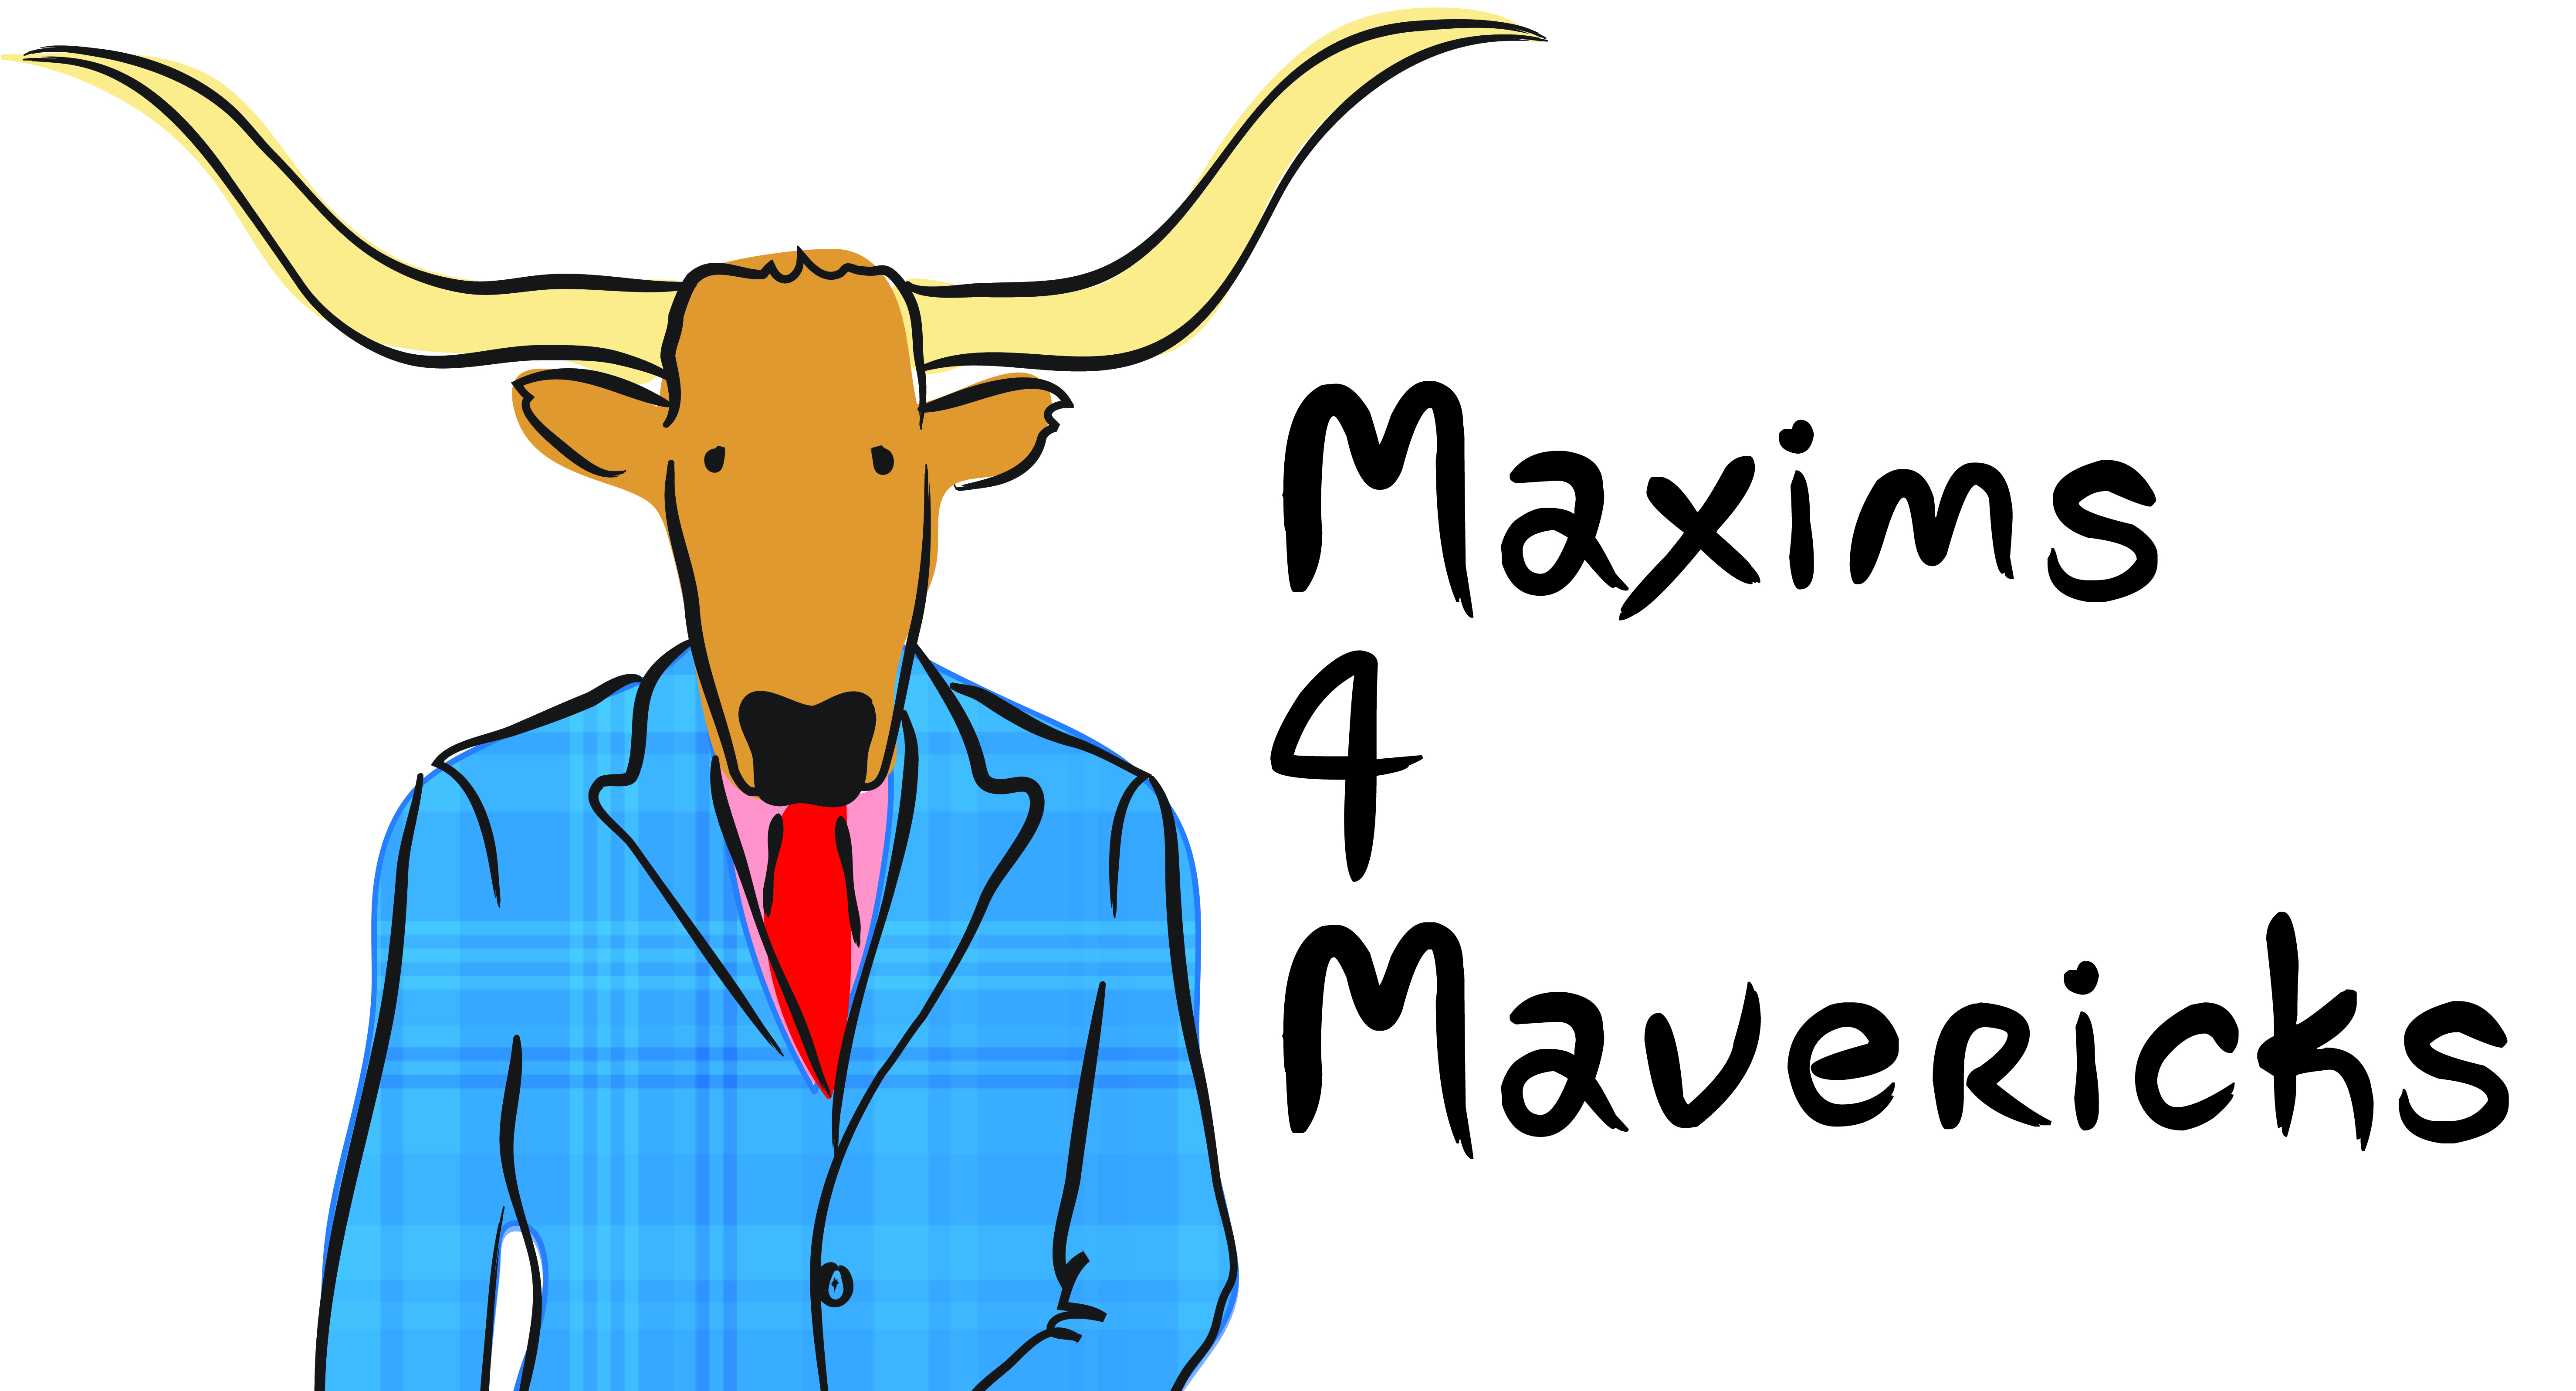 Maxims 4 Mavericks by Kent Healy